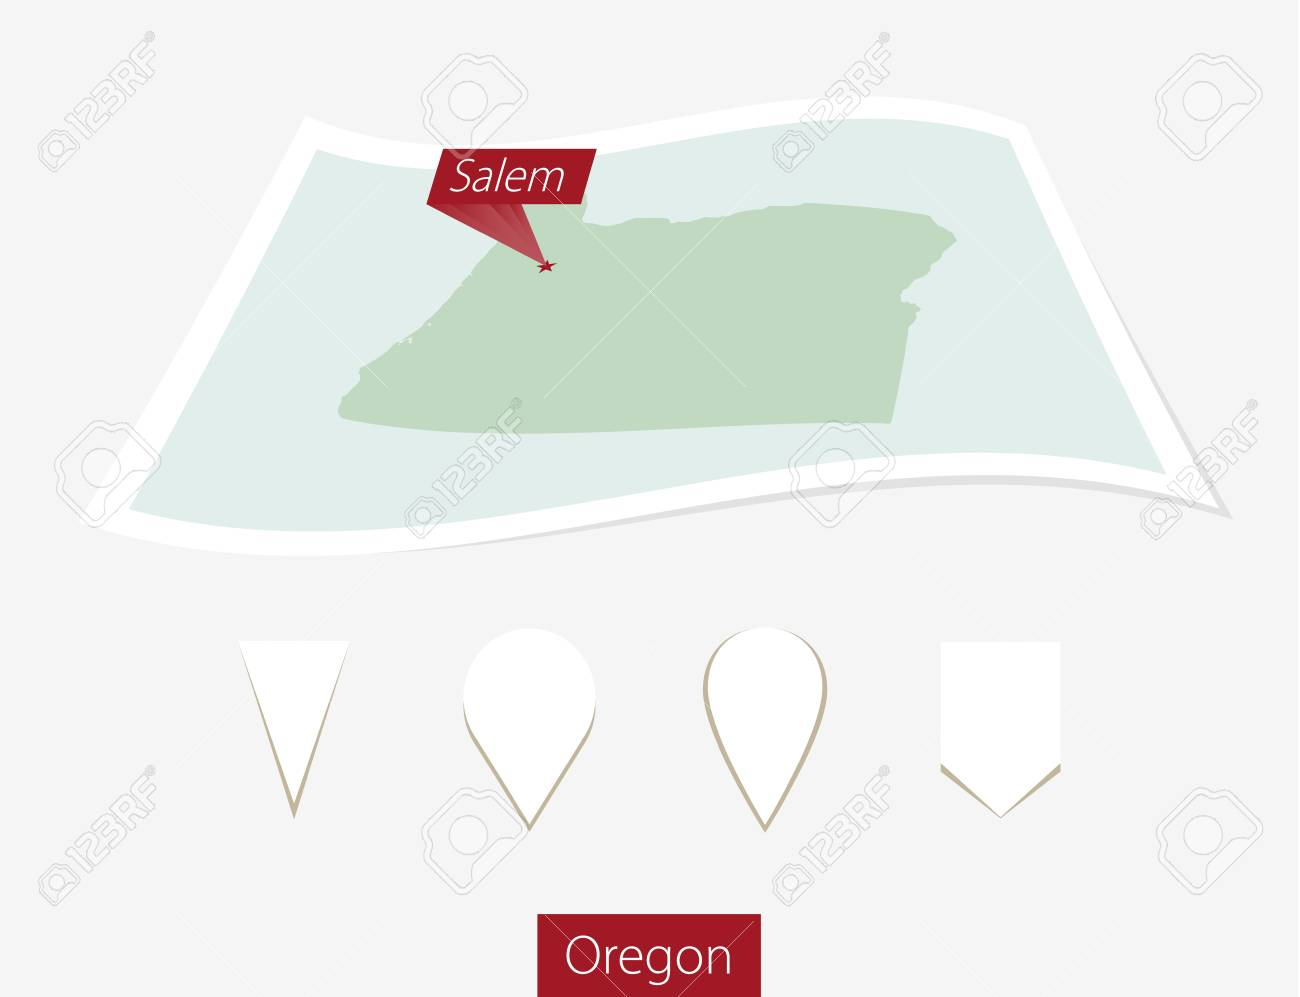 Capital Of Oregon Map.Curved Paper Map Of Oregon State With Capital Salem On Gray